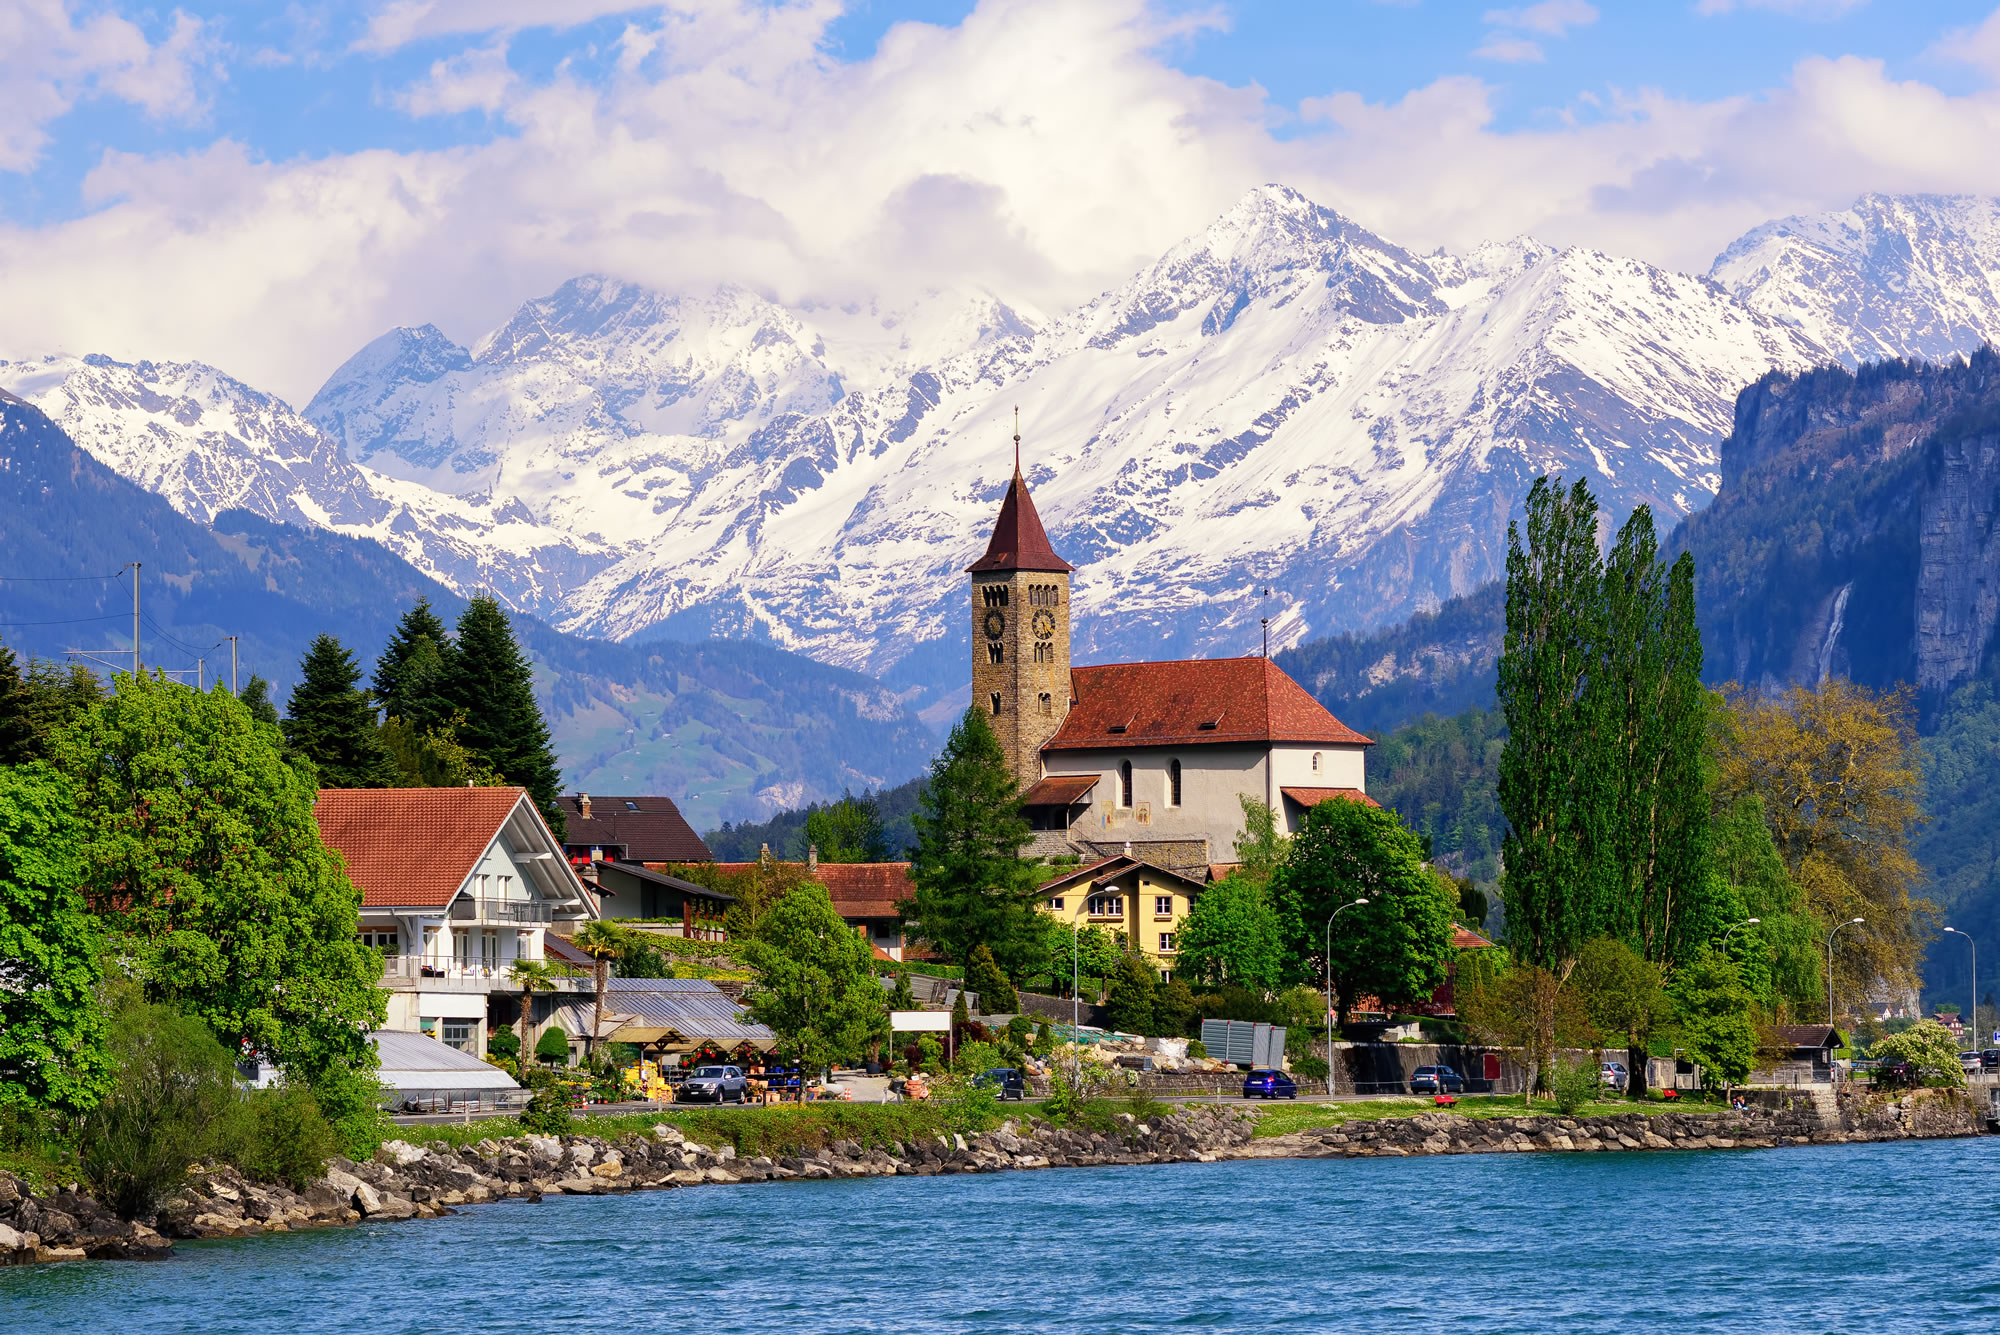 Switzerland Photos 3 - Guide of the World